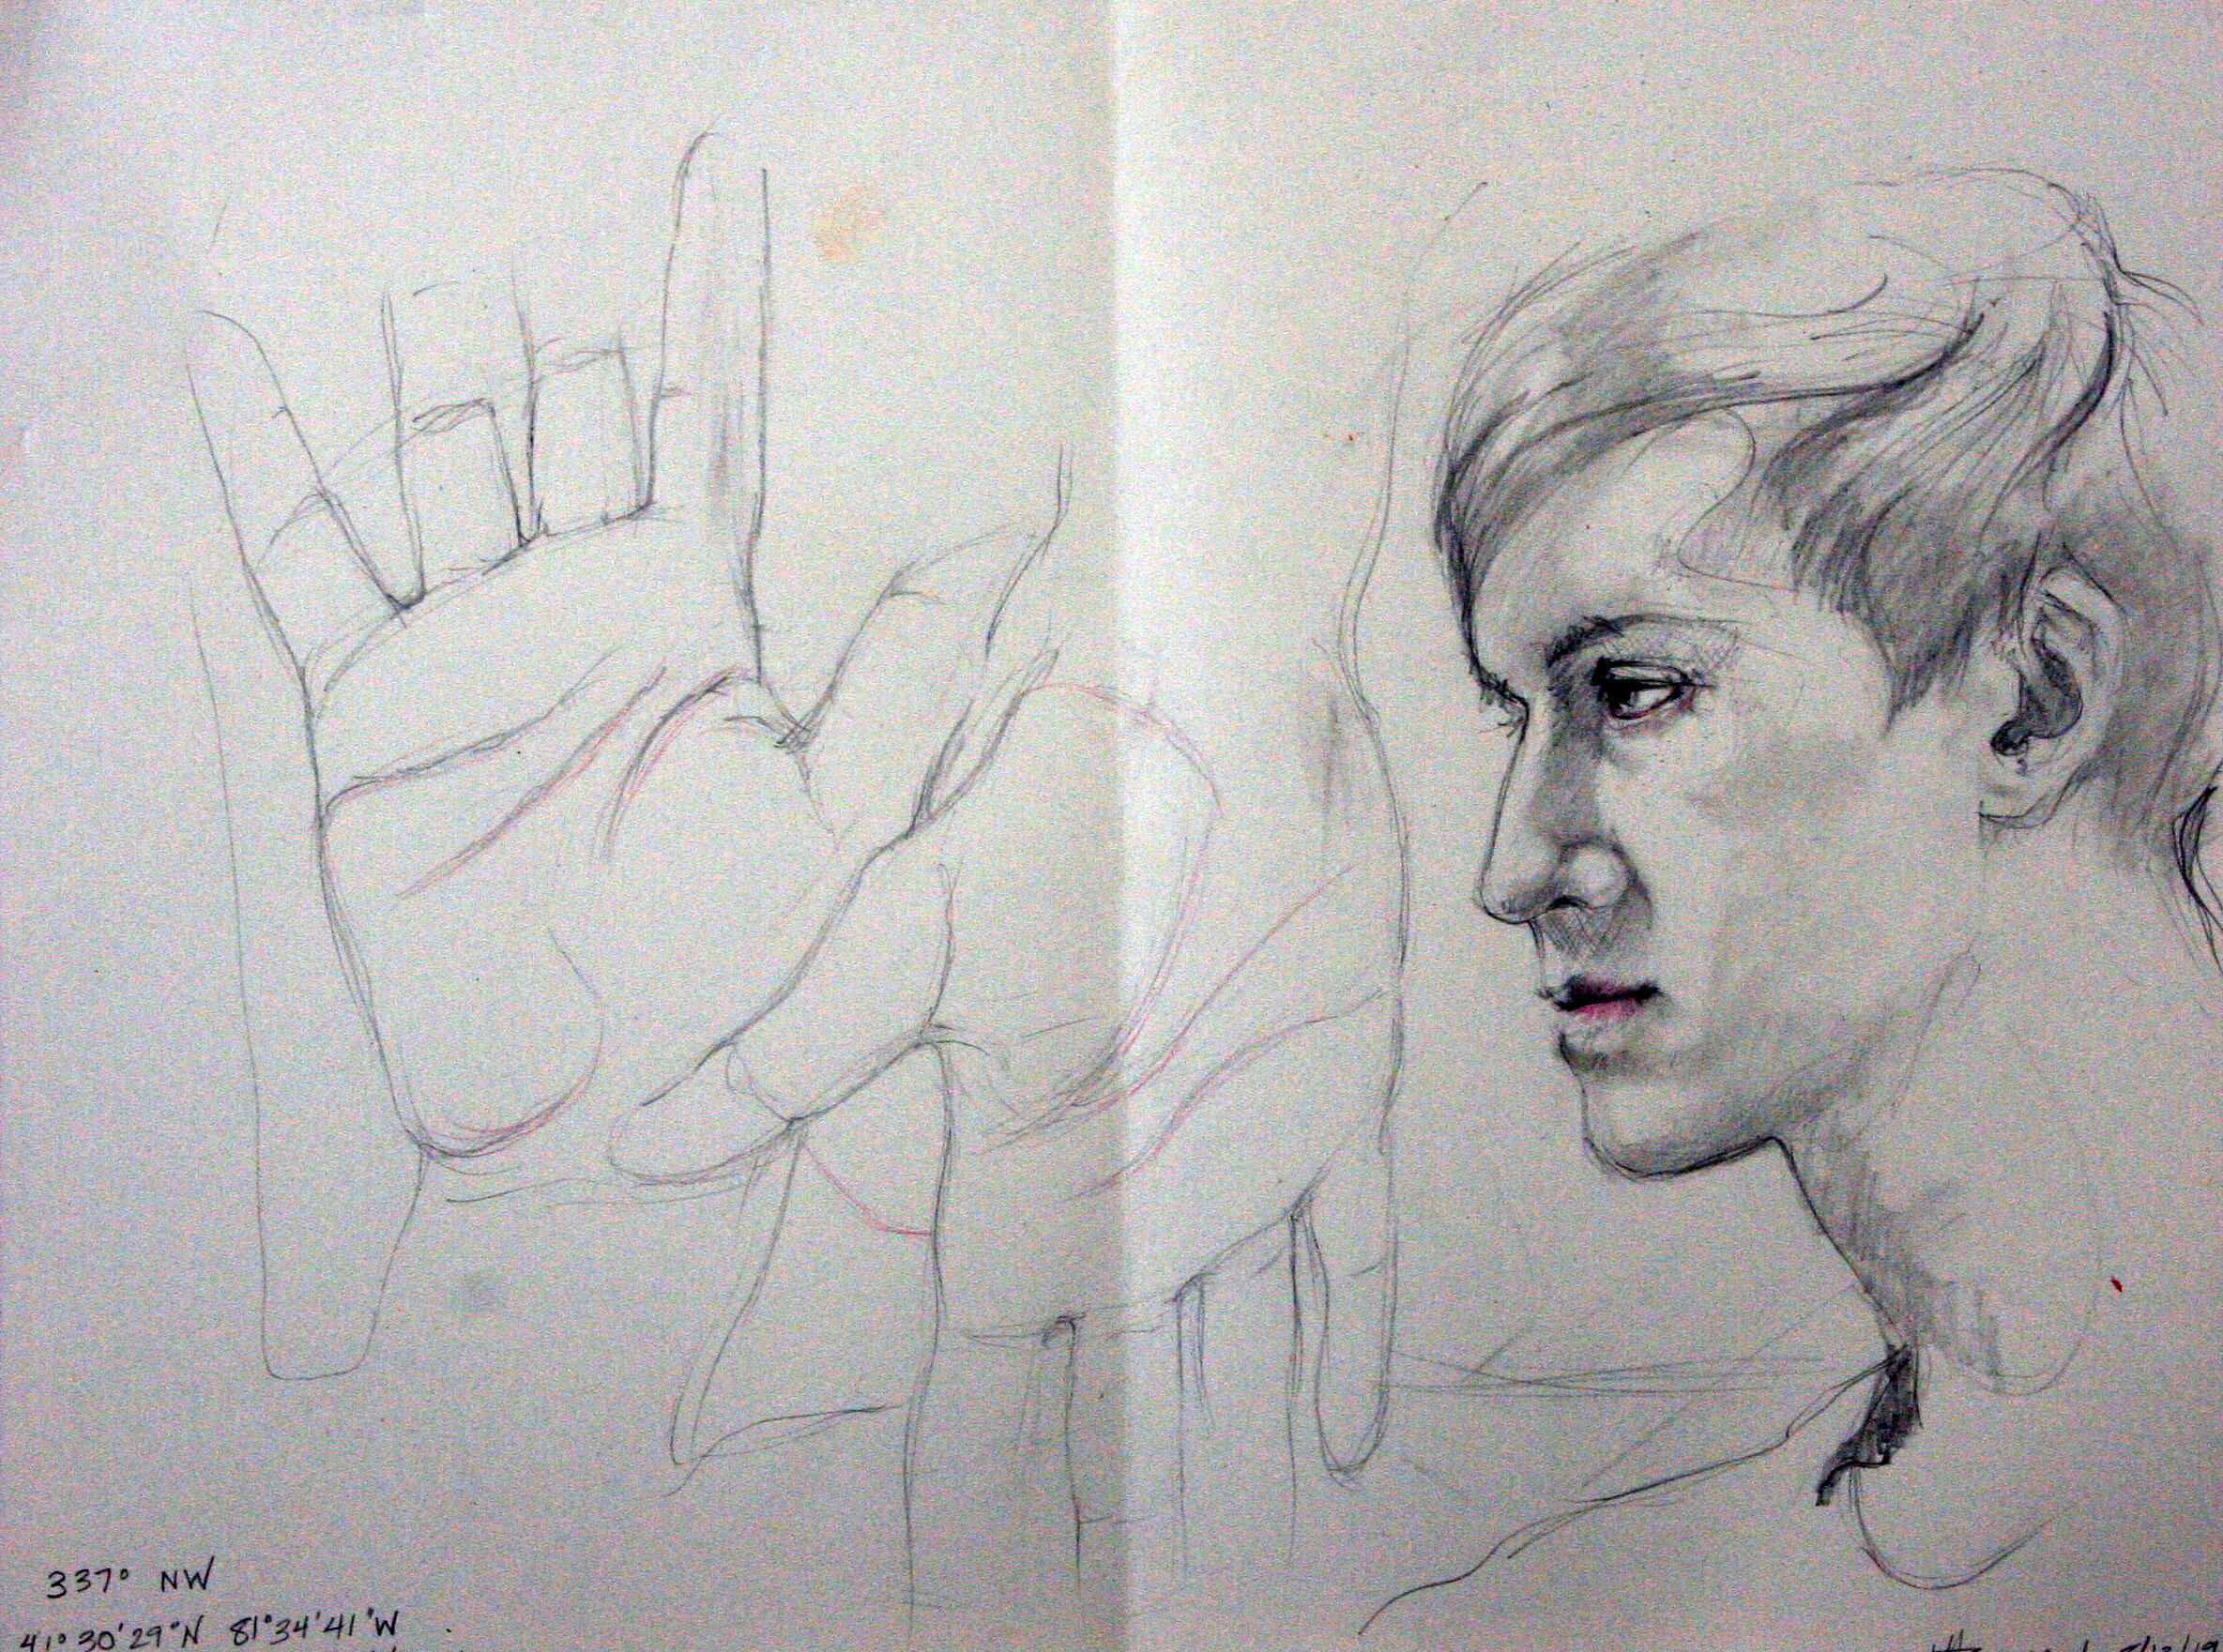 Jane Clay Teasley Hammond - Graphite